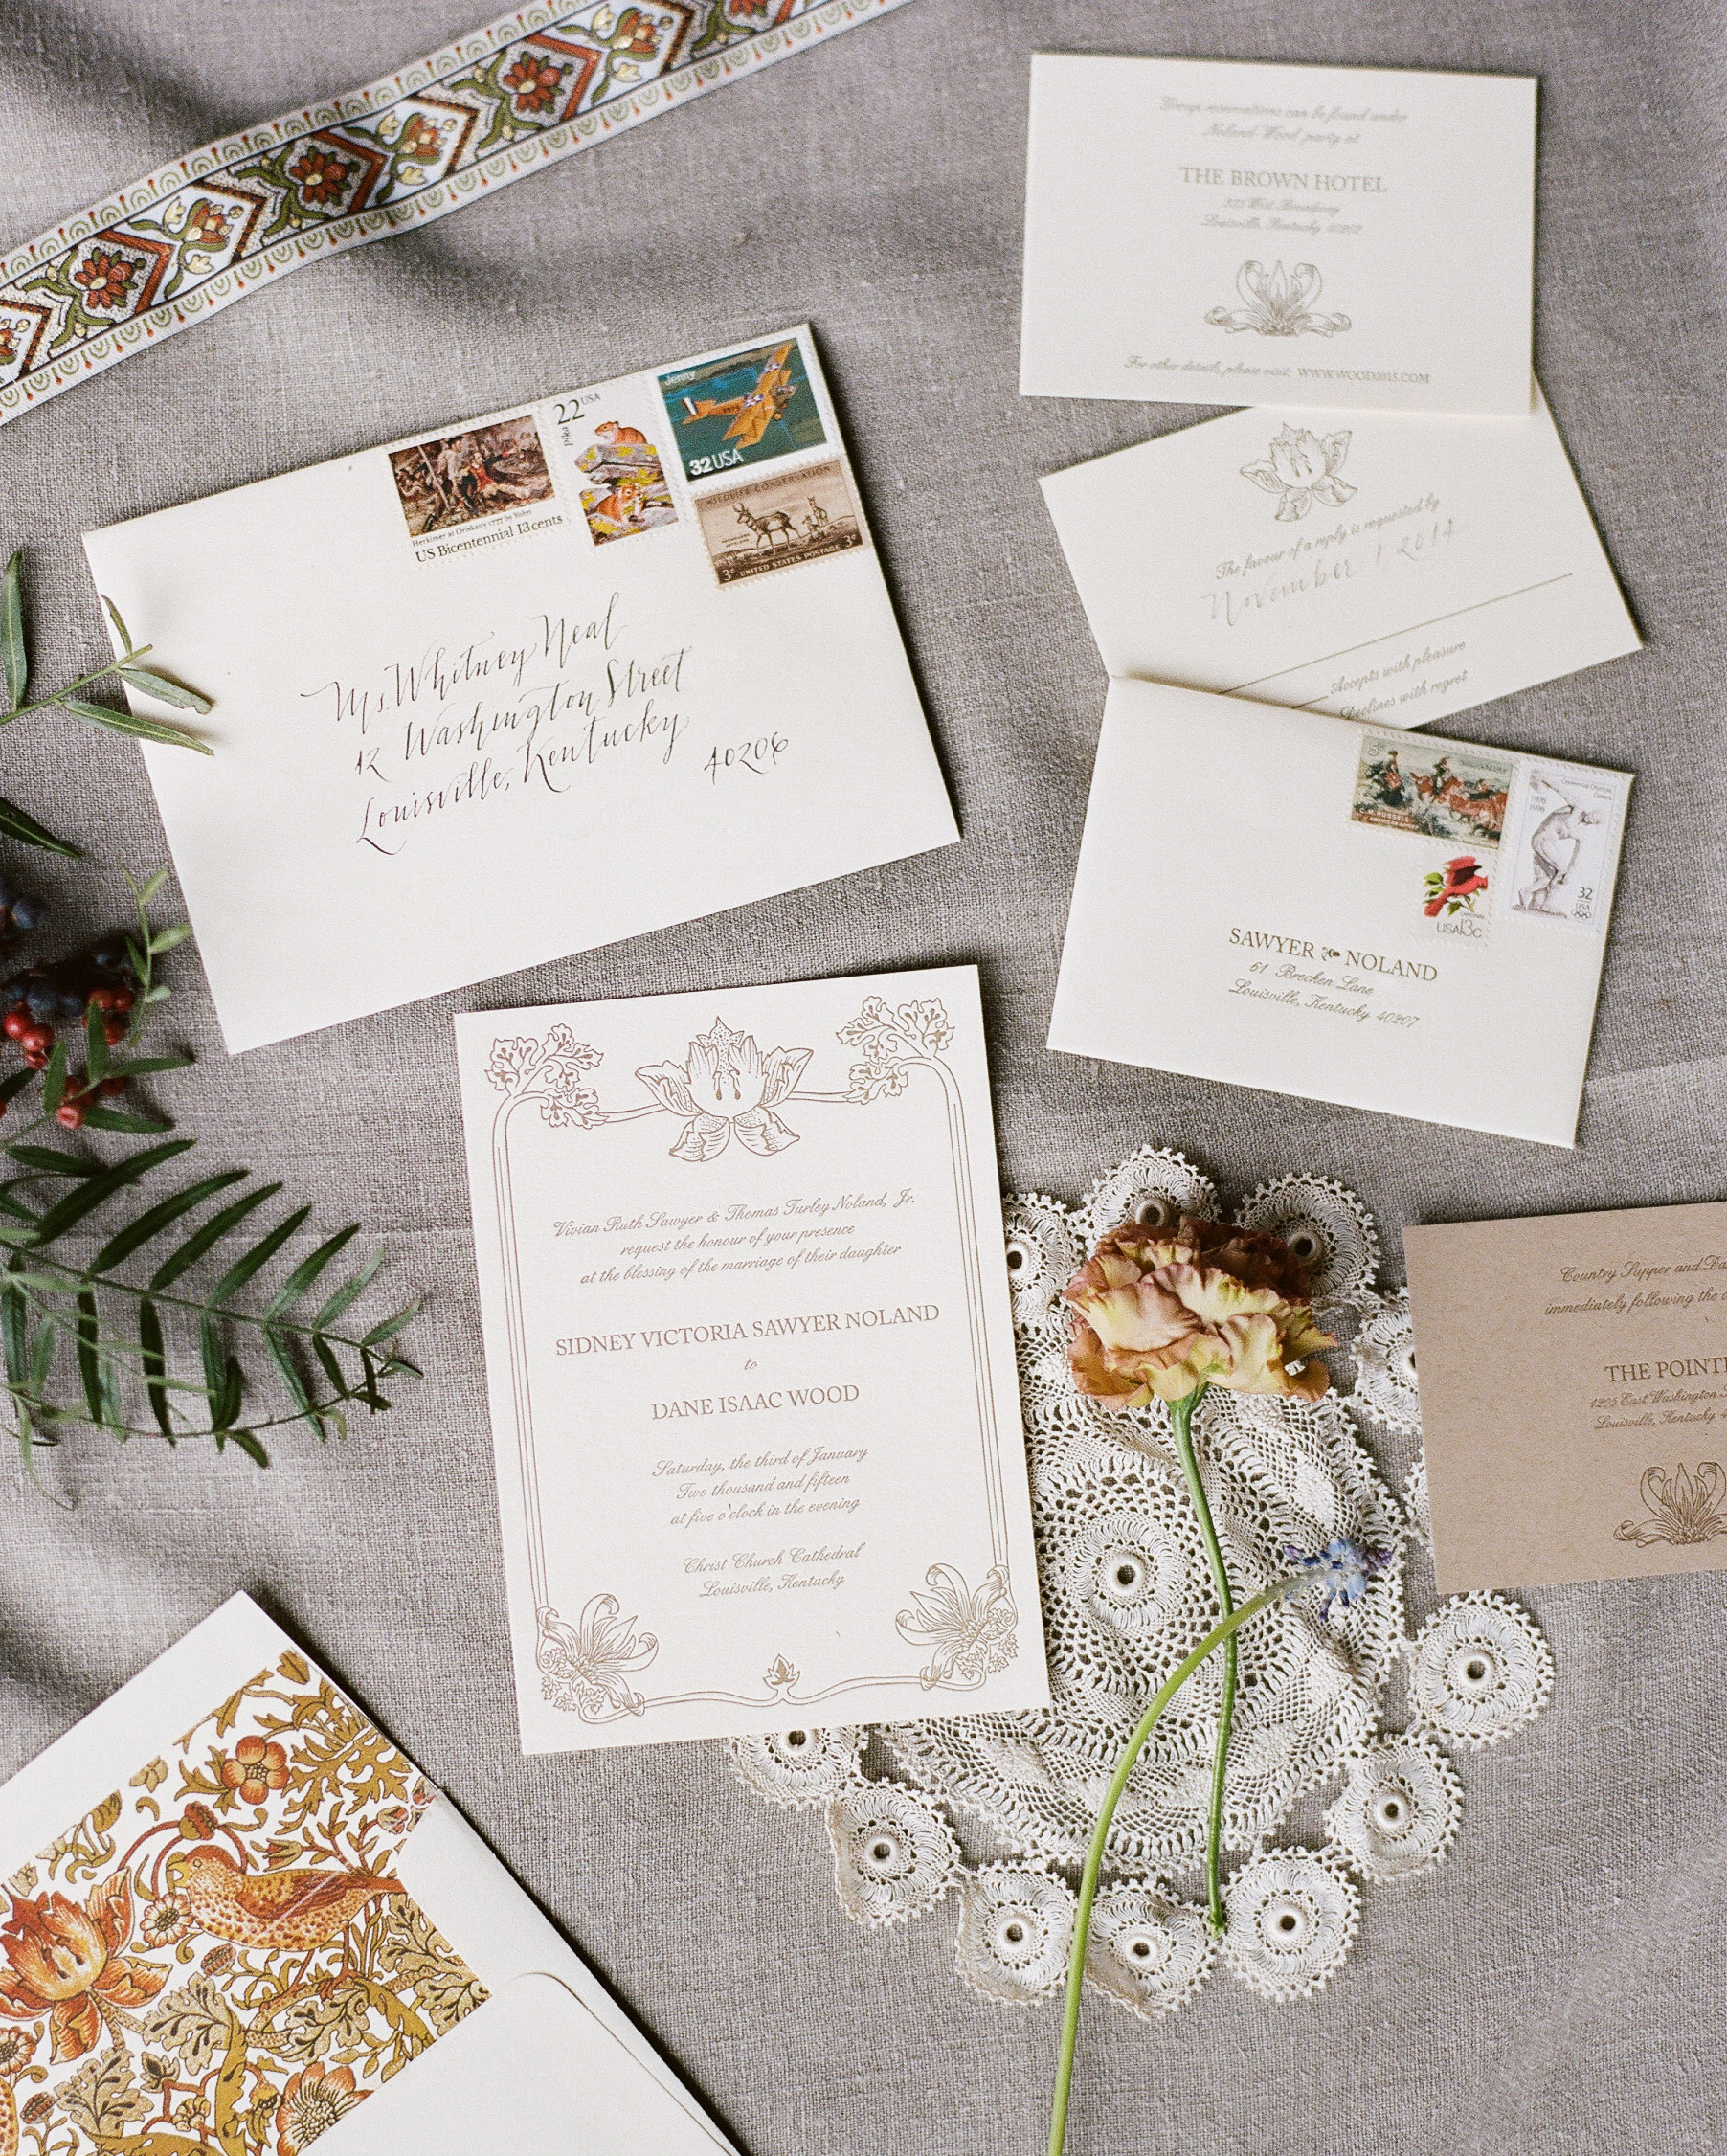 6x9 Wedding Invitation Envelopes: 10 Things You Should Know Before Addressing, Assembling